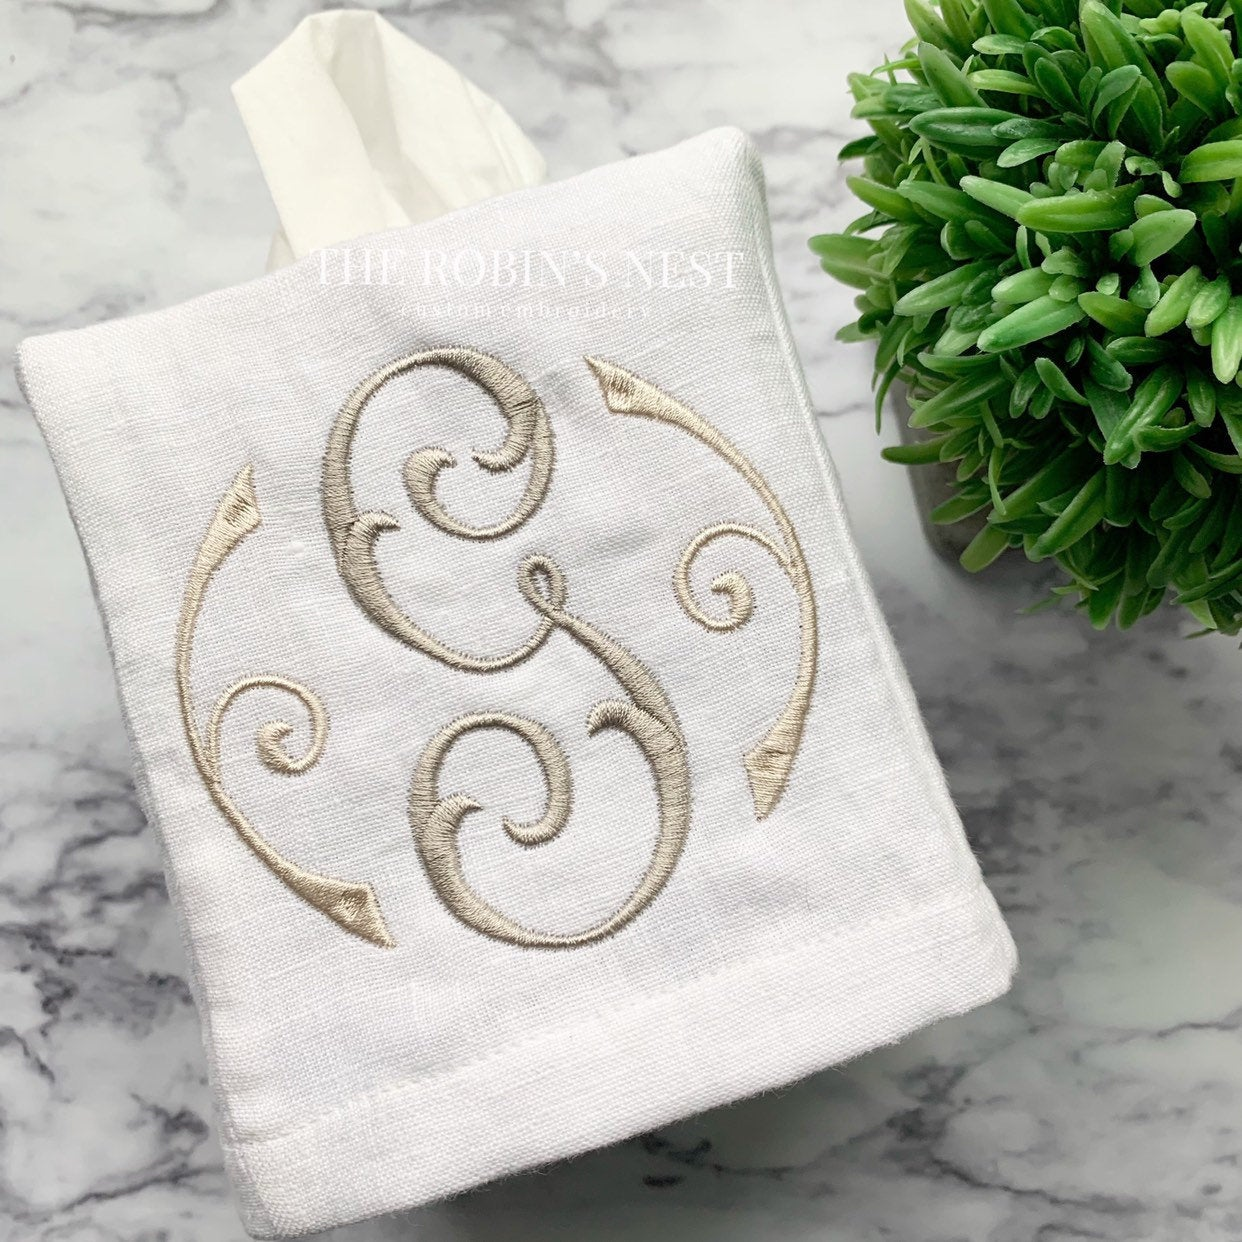 Monogrammed Linen Tissue Box Cover Embroidered